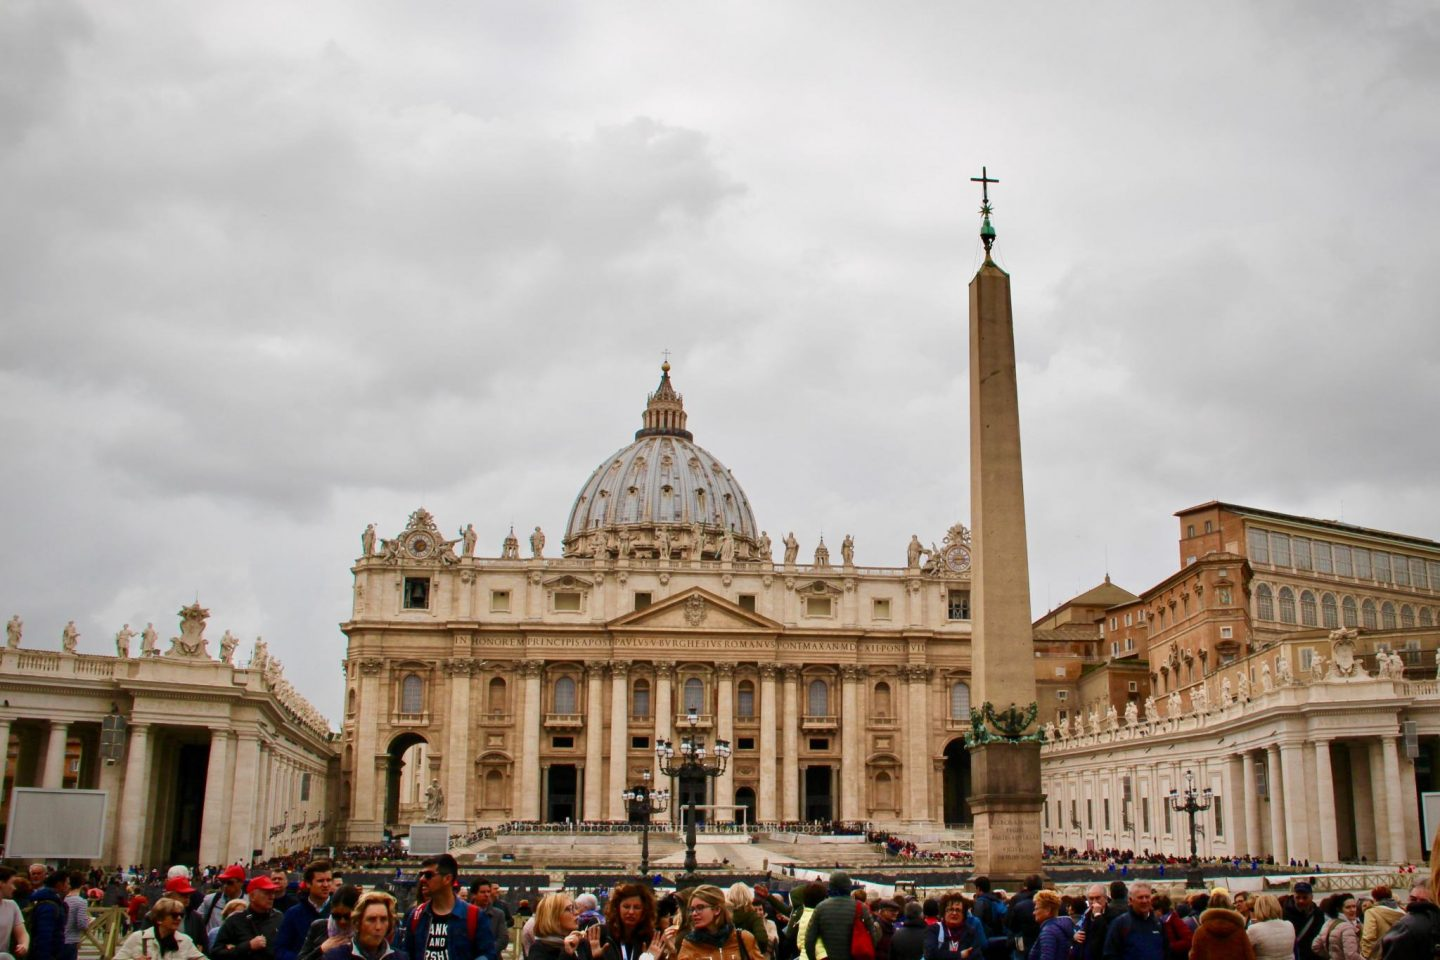 St. Peter's Basilica ... 24 hours in Rome ... The Spectacular Adventurer